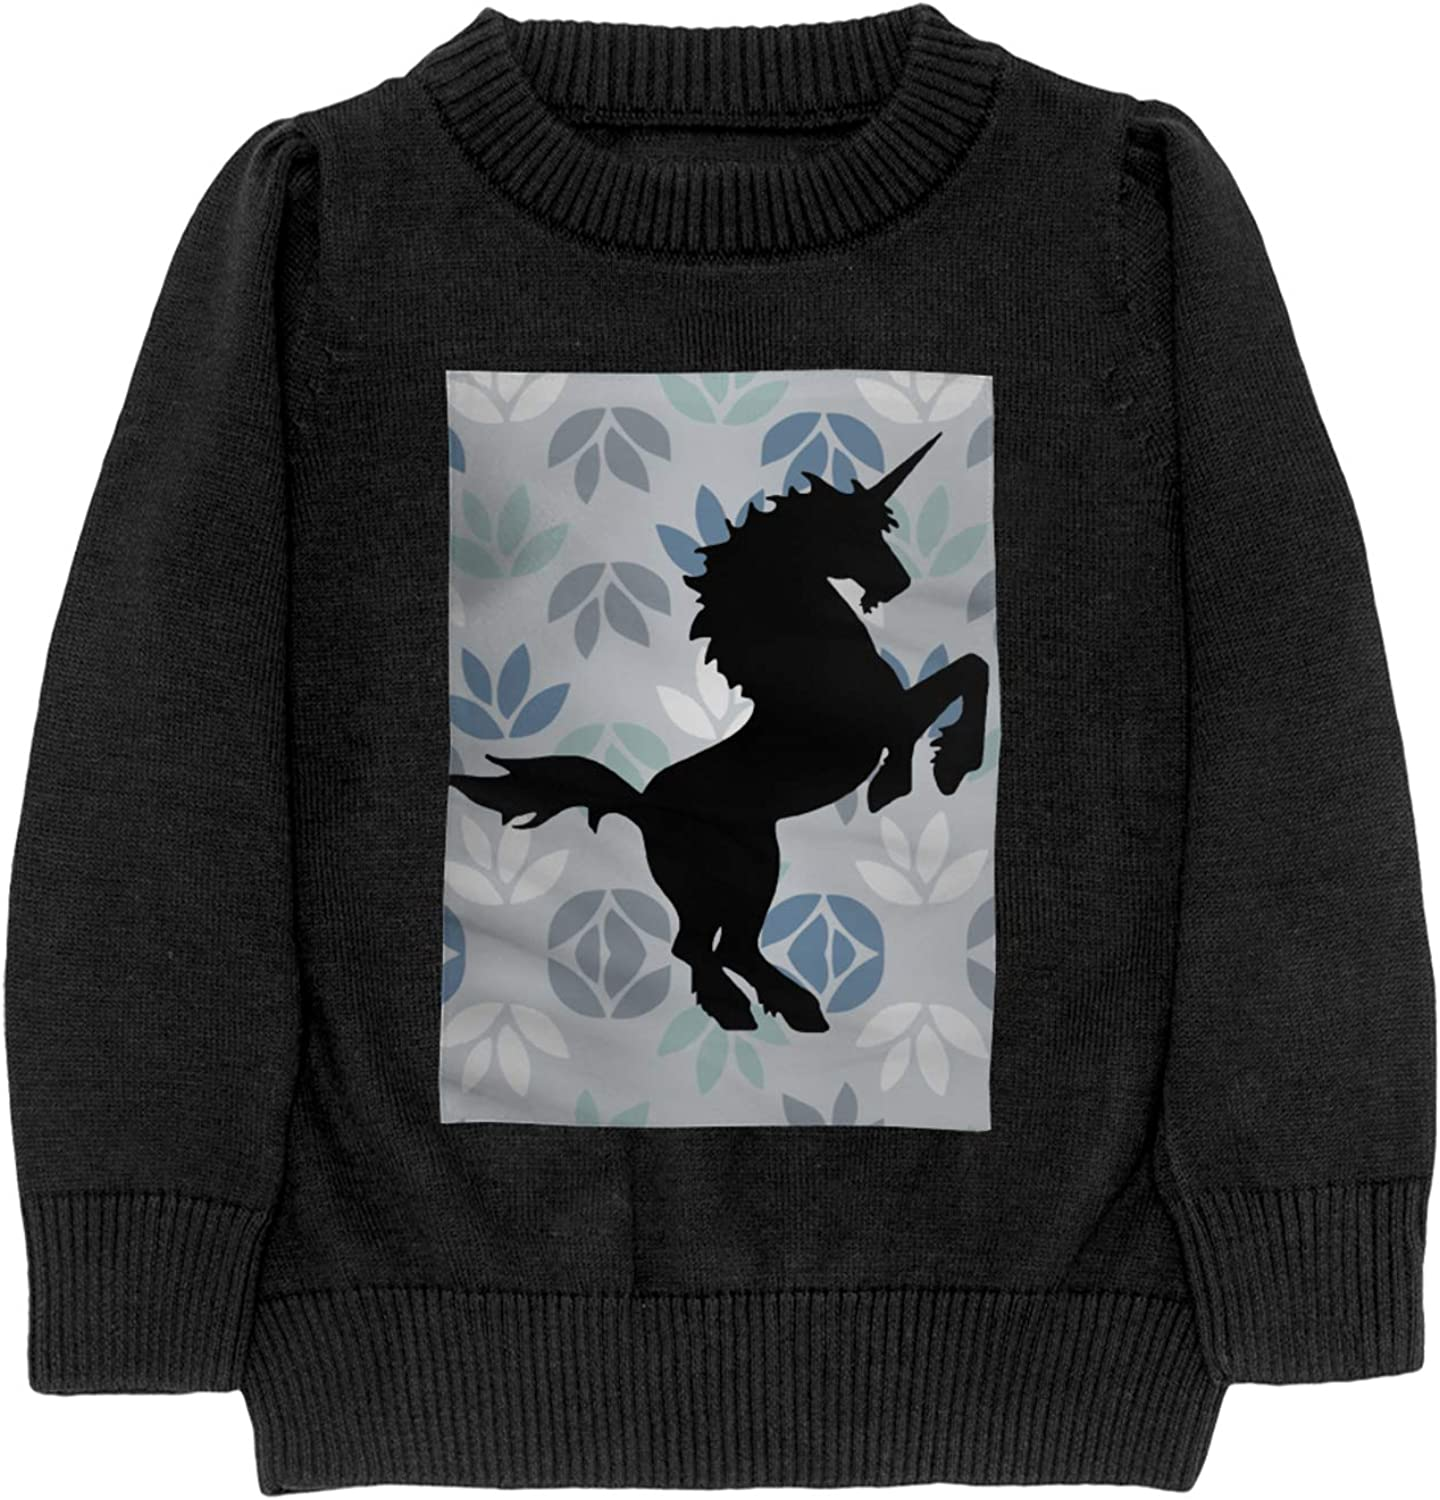 Unicorn Horse Boy Sweater Sweatshirt Manufacturer direct delivery Crew Warm Cheap mail order specialty store Neck